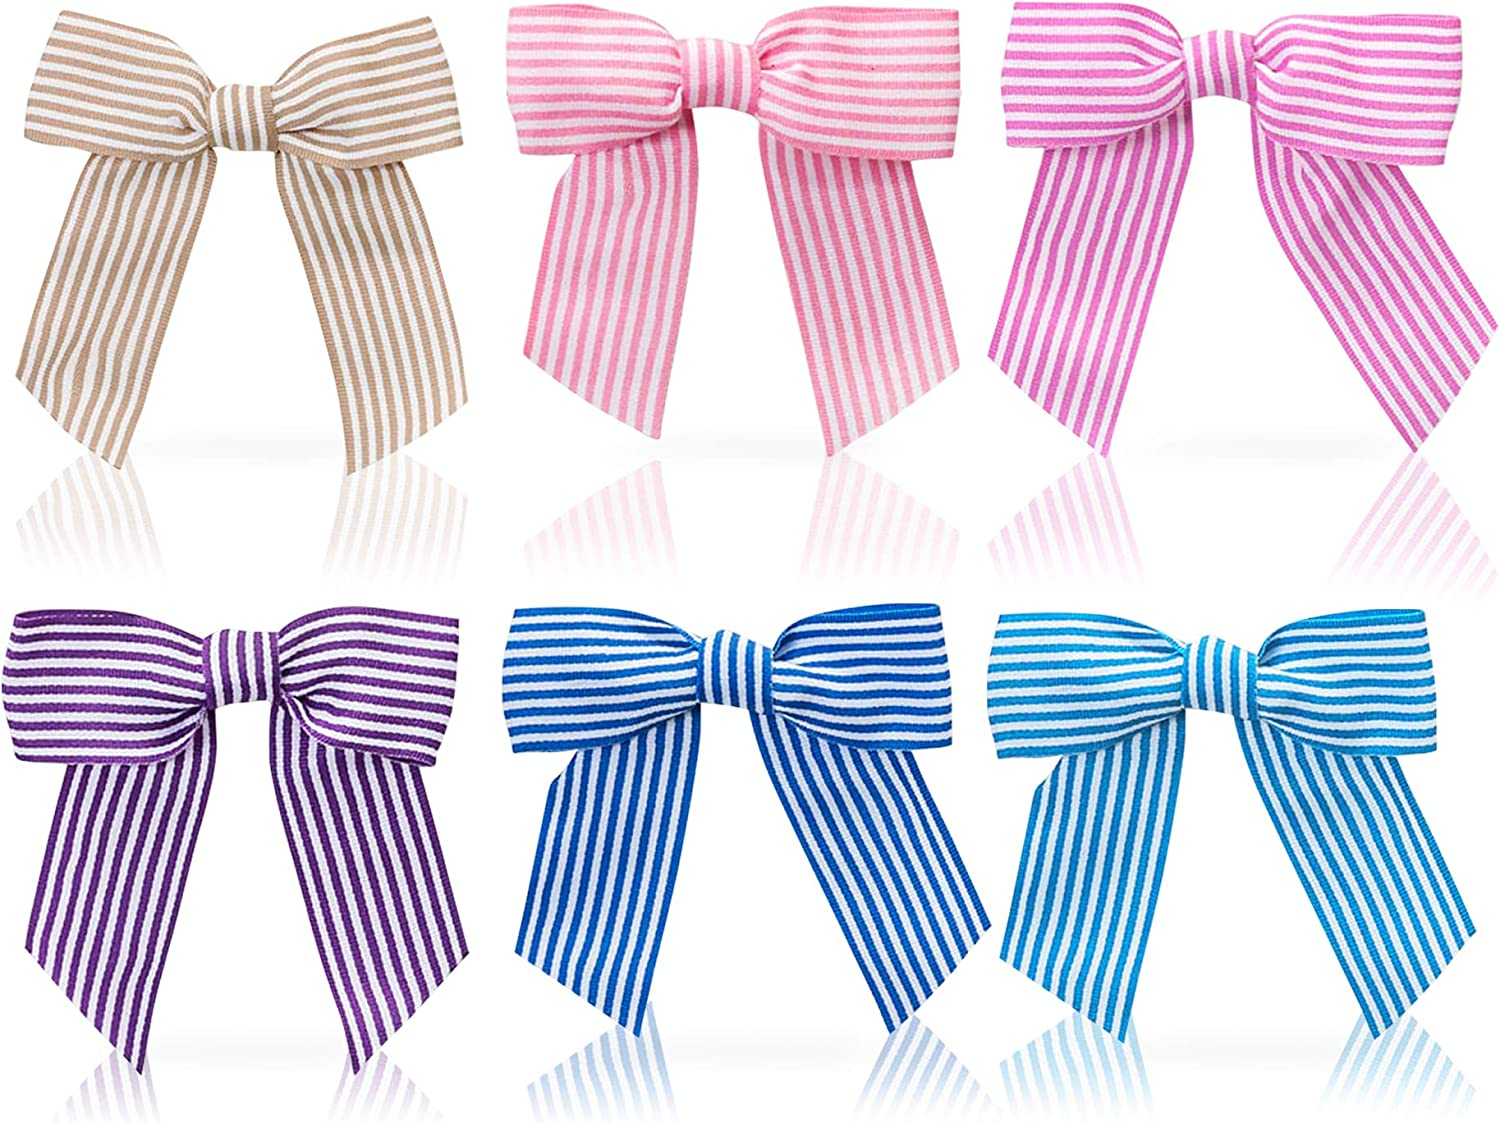 Baby Girl Grosgrain Bow Hairclip Barrettes- 3 Inch Size, Striped Design- Stylish Hair Accessories, Cute Hair Clips for Toddlers, Infants, Children- Soft Nylon Bow, Alligator Clip, Mini Size-XX Set